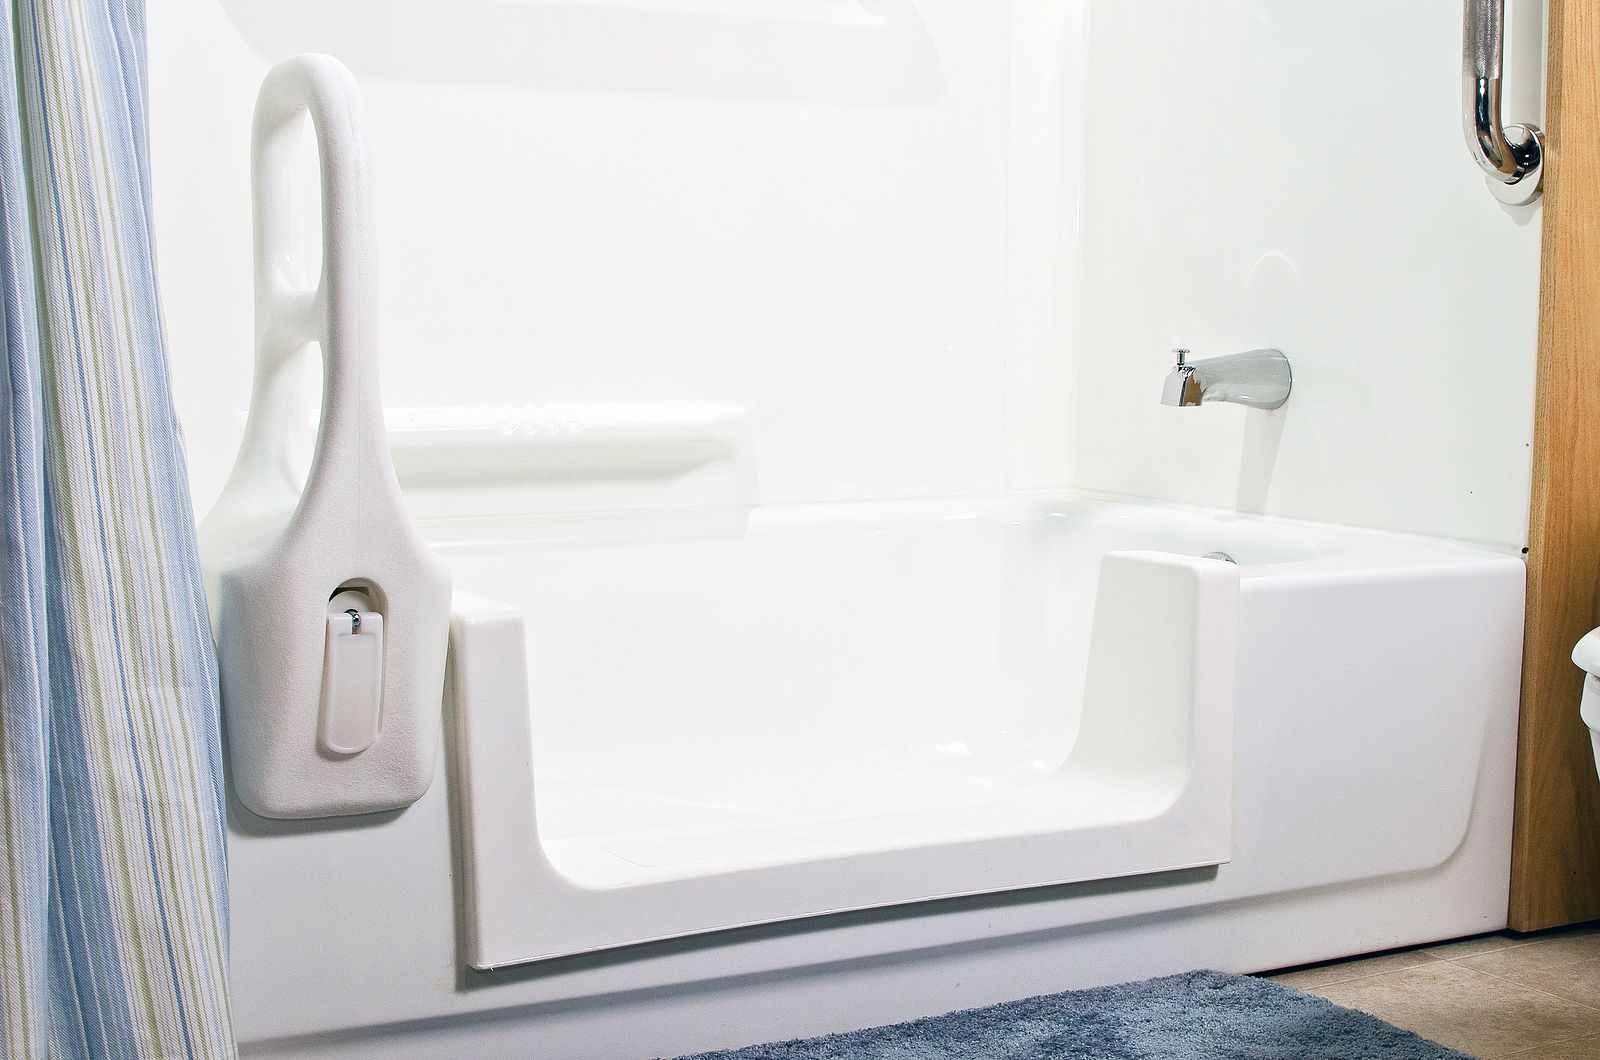 Pin On Cleancut Bath Accessibility Products